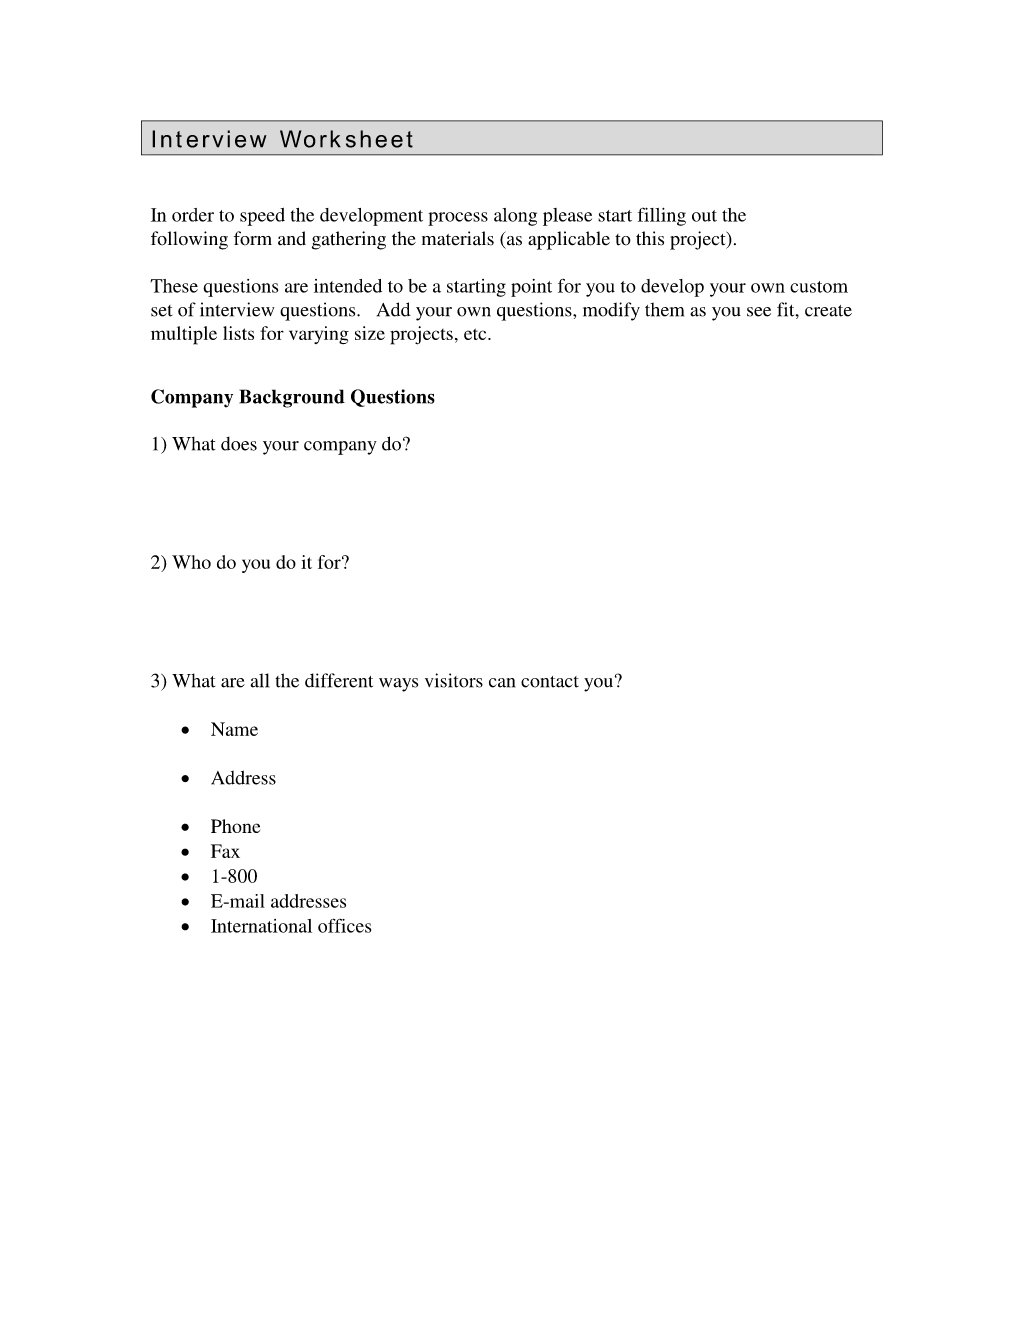 How To Write Your Own Interview Questionnaire Information